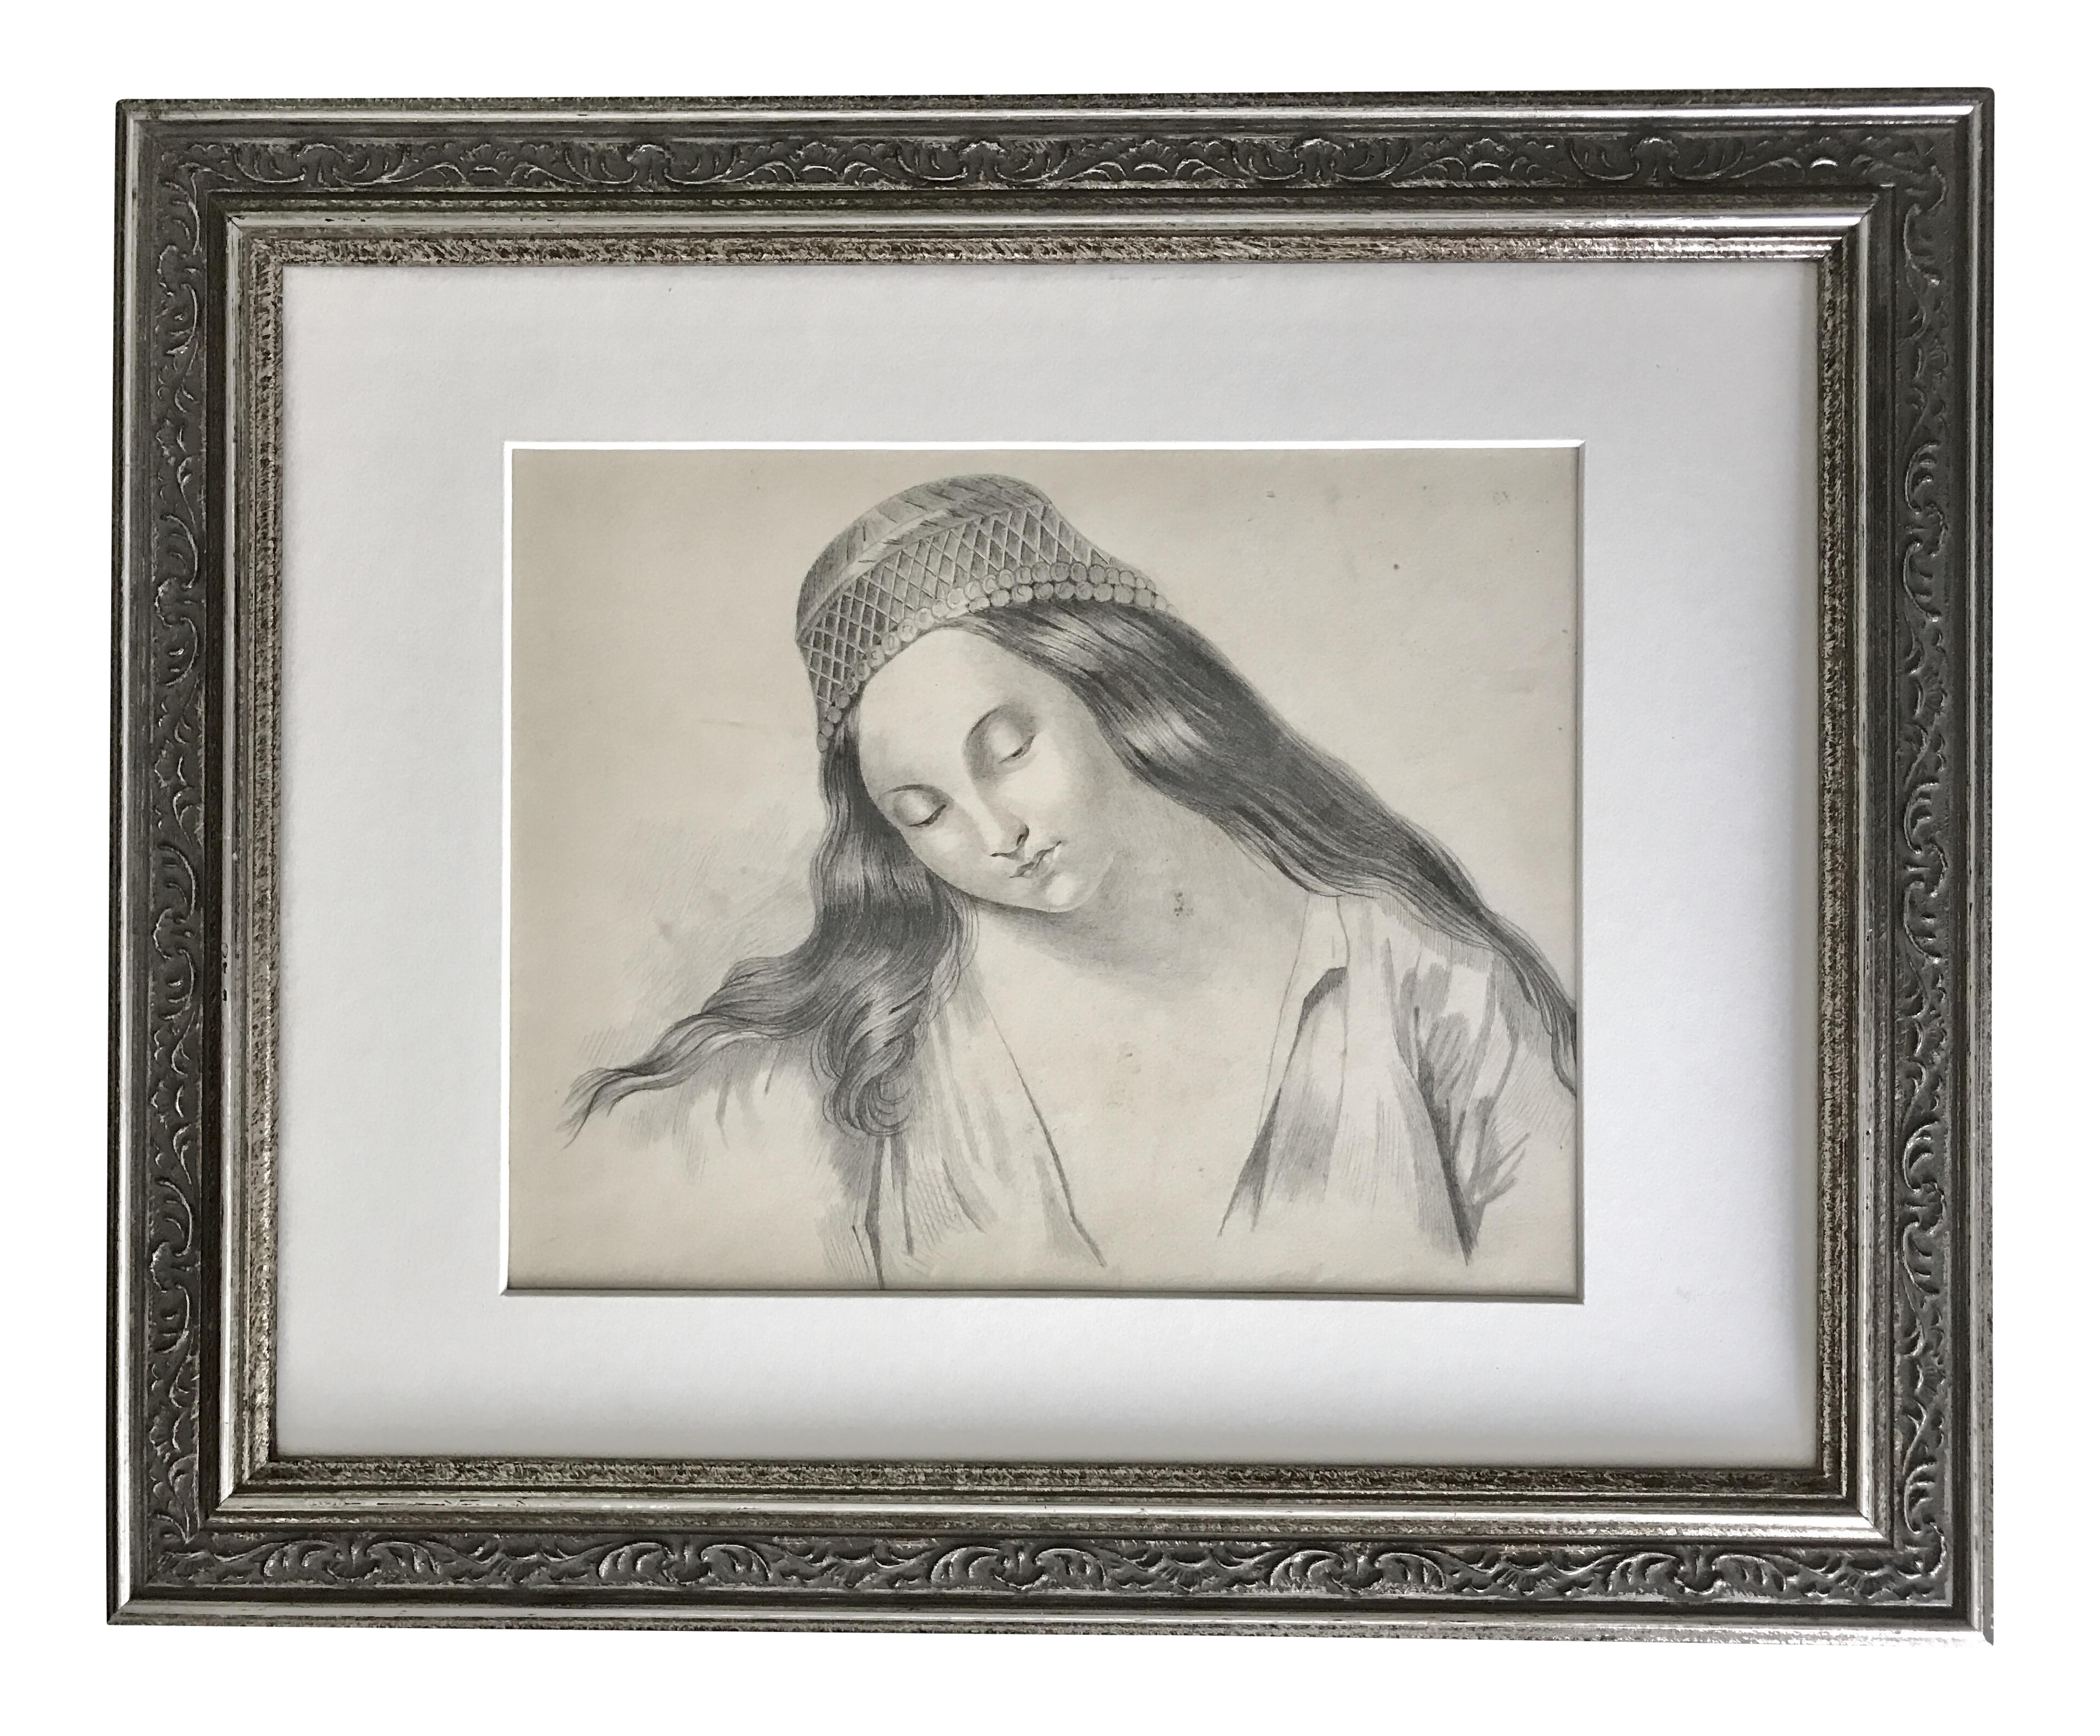 Atelier drawing 19th century portrait. Antique french master of